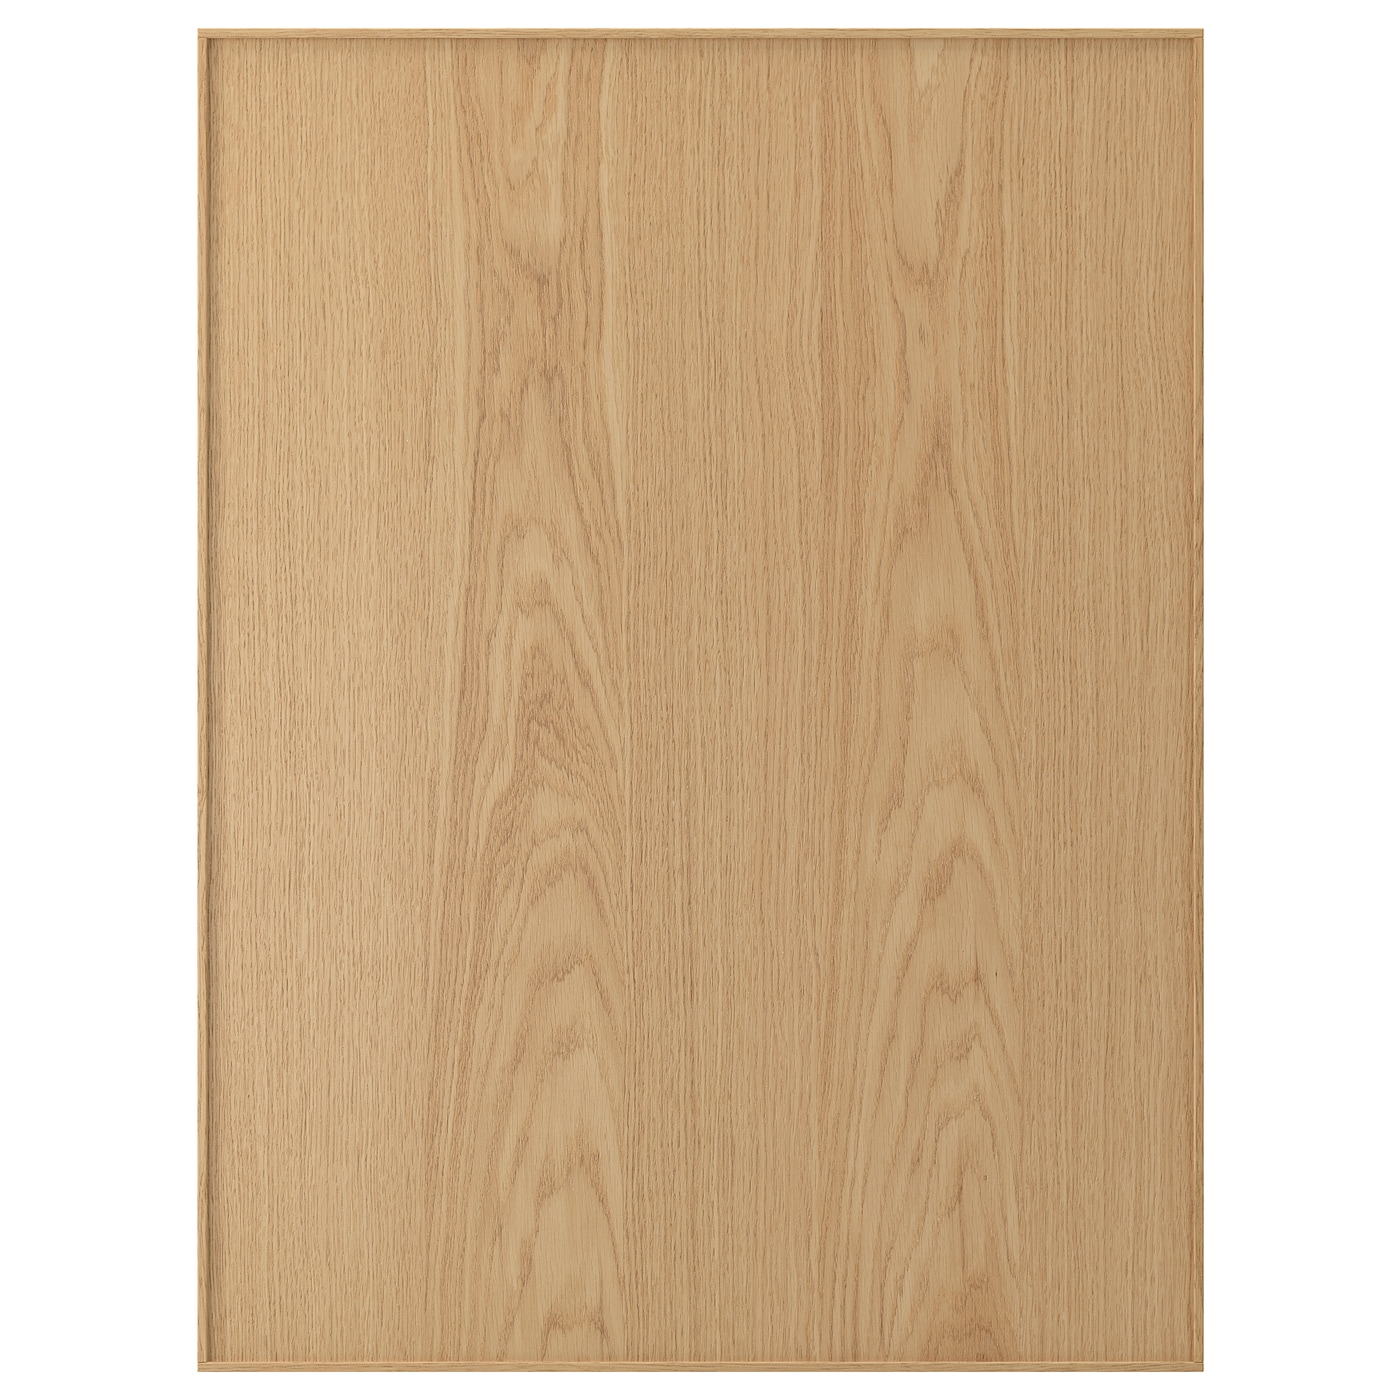 IKEA EKESTAD door The solid wood frame adds stability and makes the door durable and long lasting.